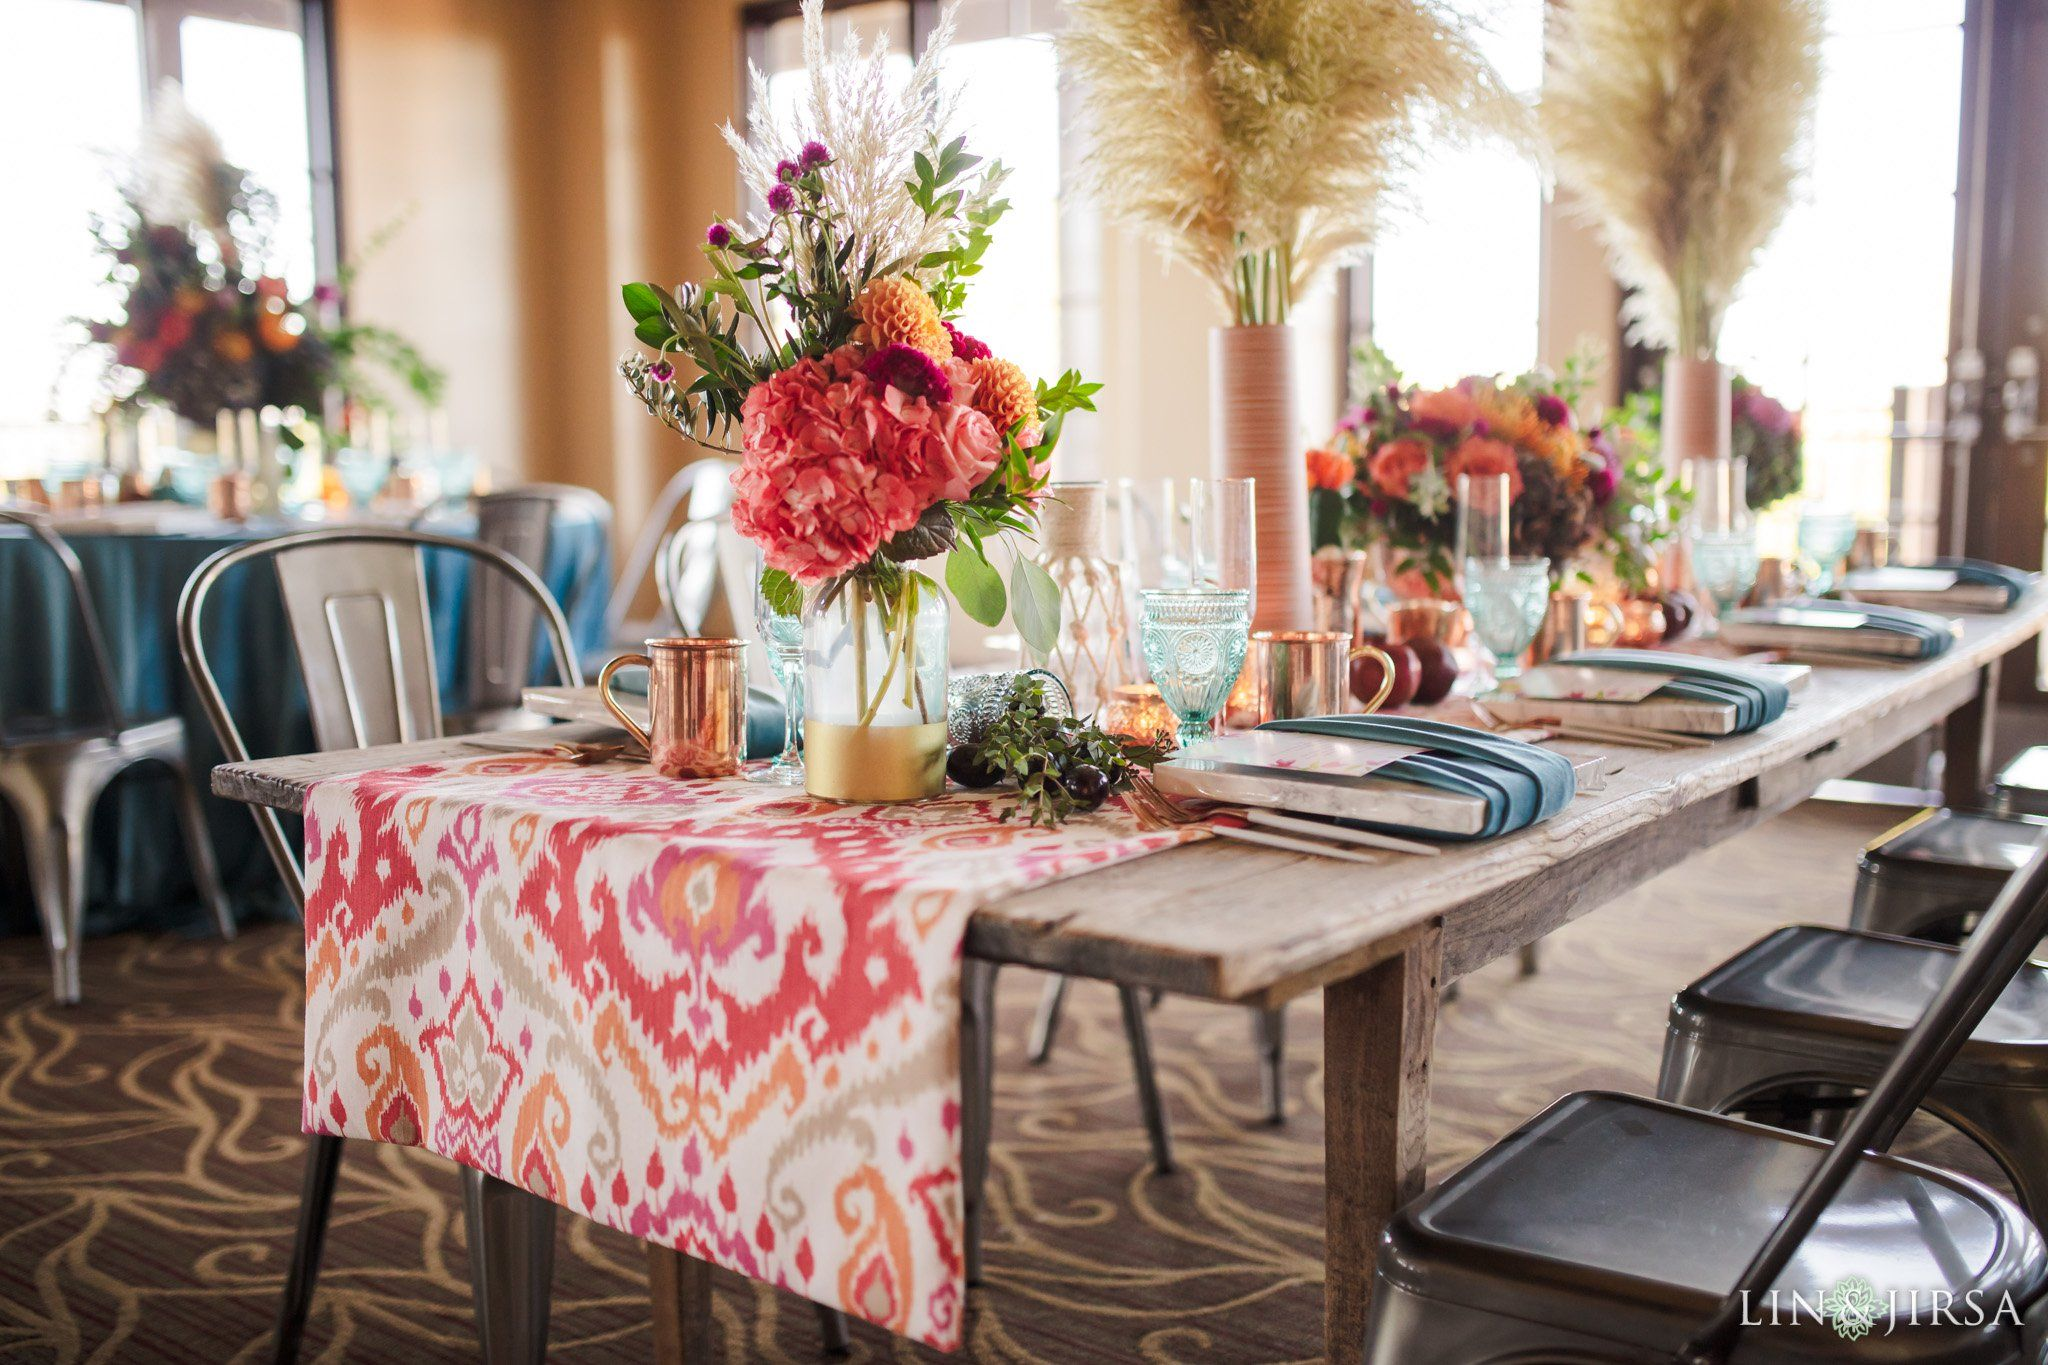 Living Coral Signature Party Rentals On The Blog California Southern California Seating Pan Bright Table Orange County Wedding Country Club Wedding